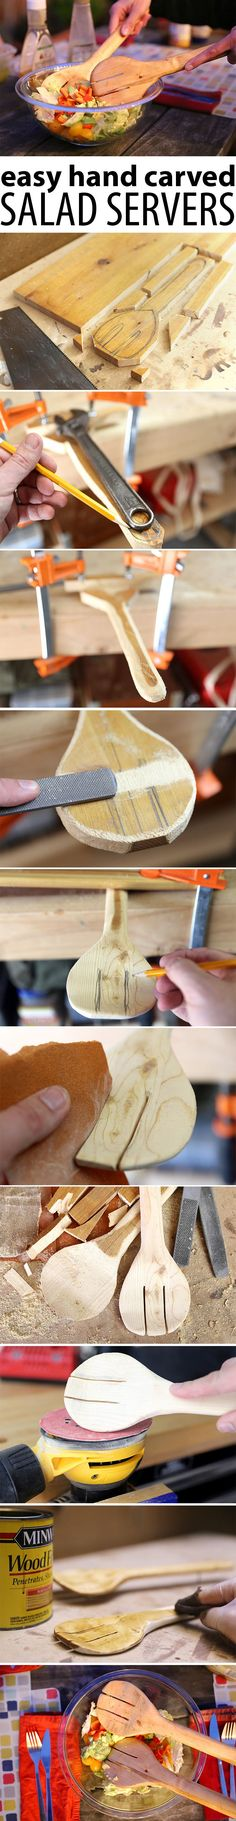 Not all woodworking involves perfect cuts and power tools. Wood can easily be shaped by hand tools, carving away sections to take on almost any shape you can imagine.